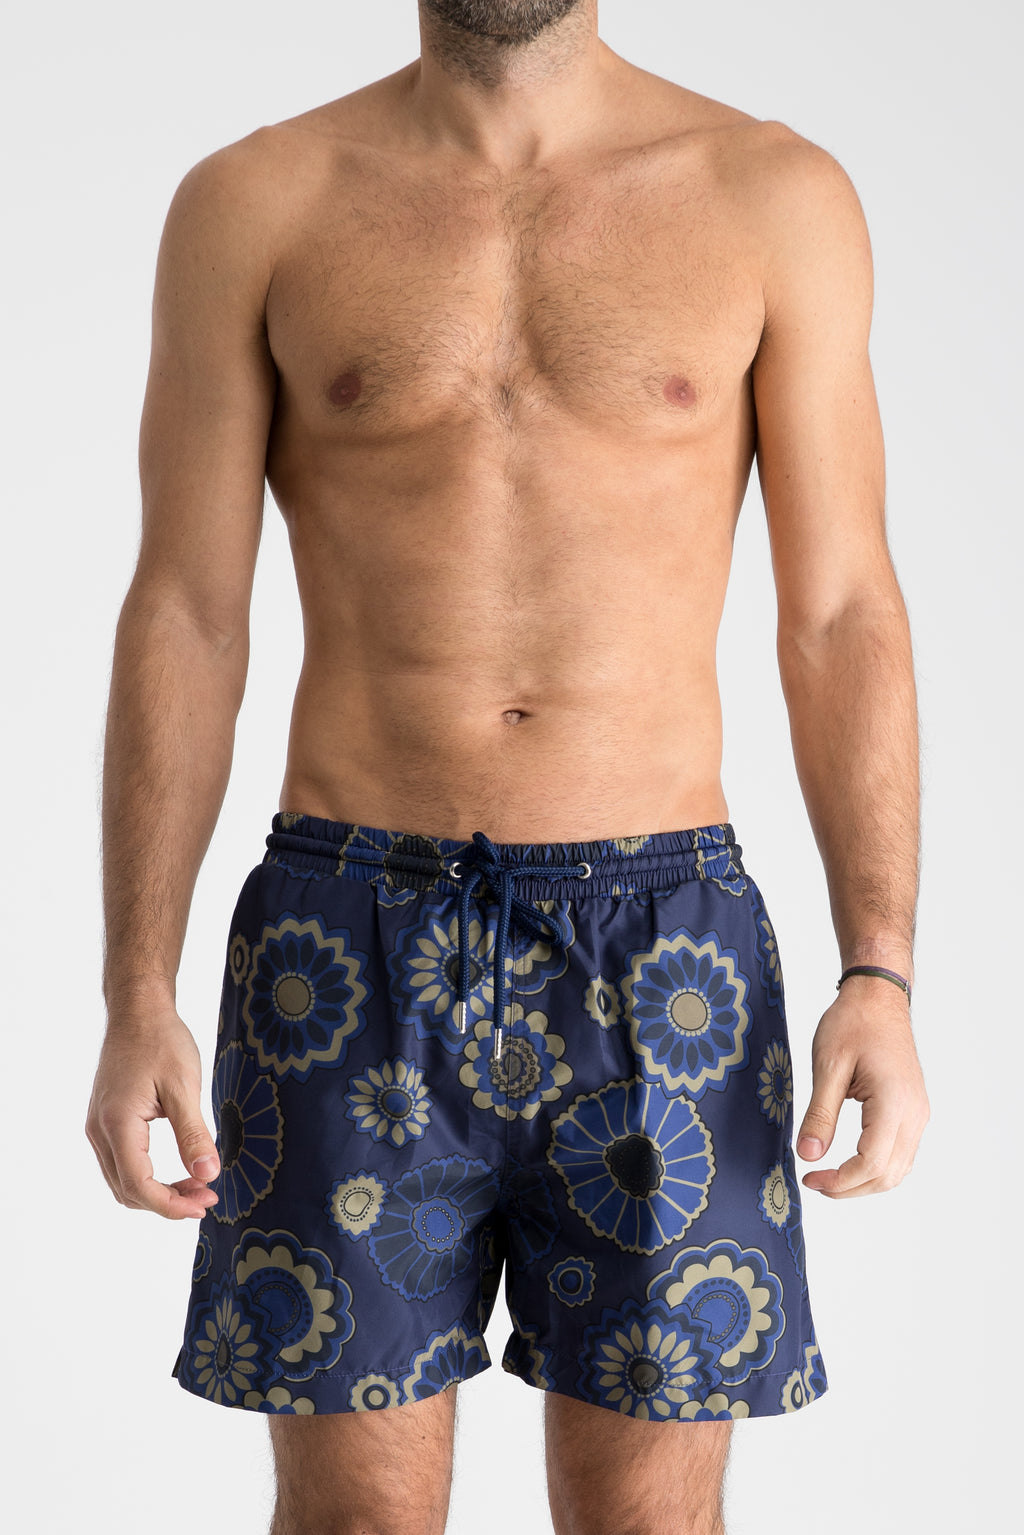 Men's Swim Shorts | Navy Floral & Khaki Floral